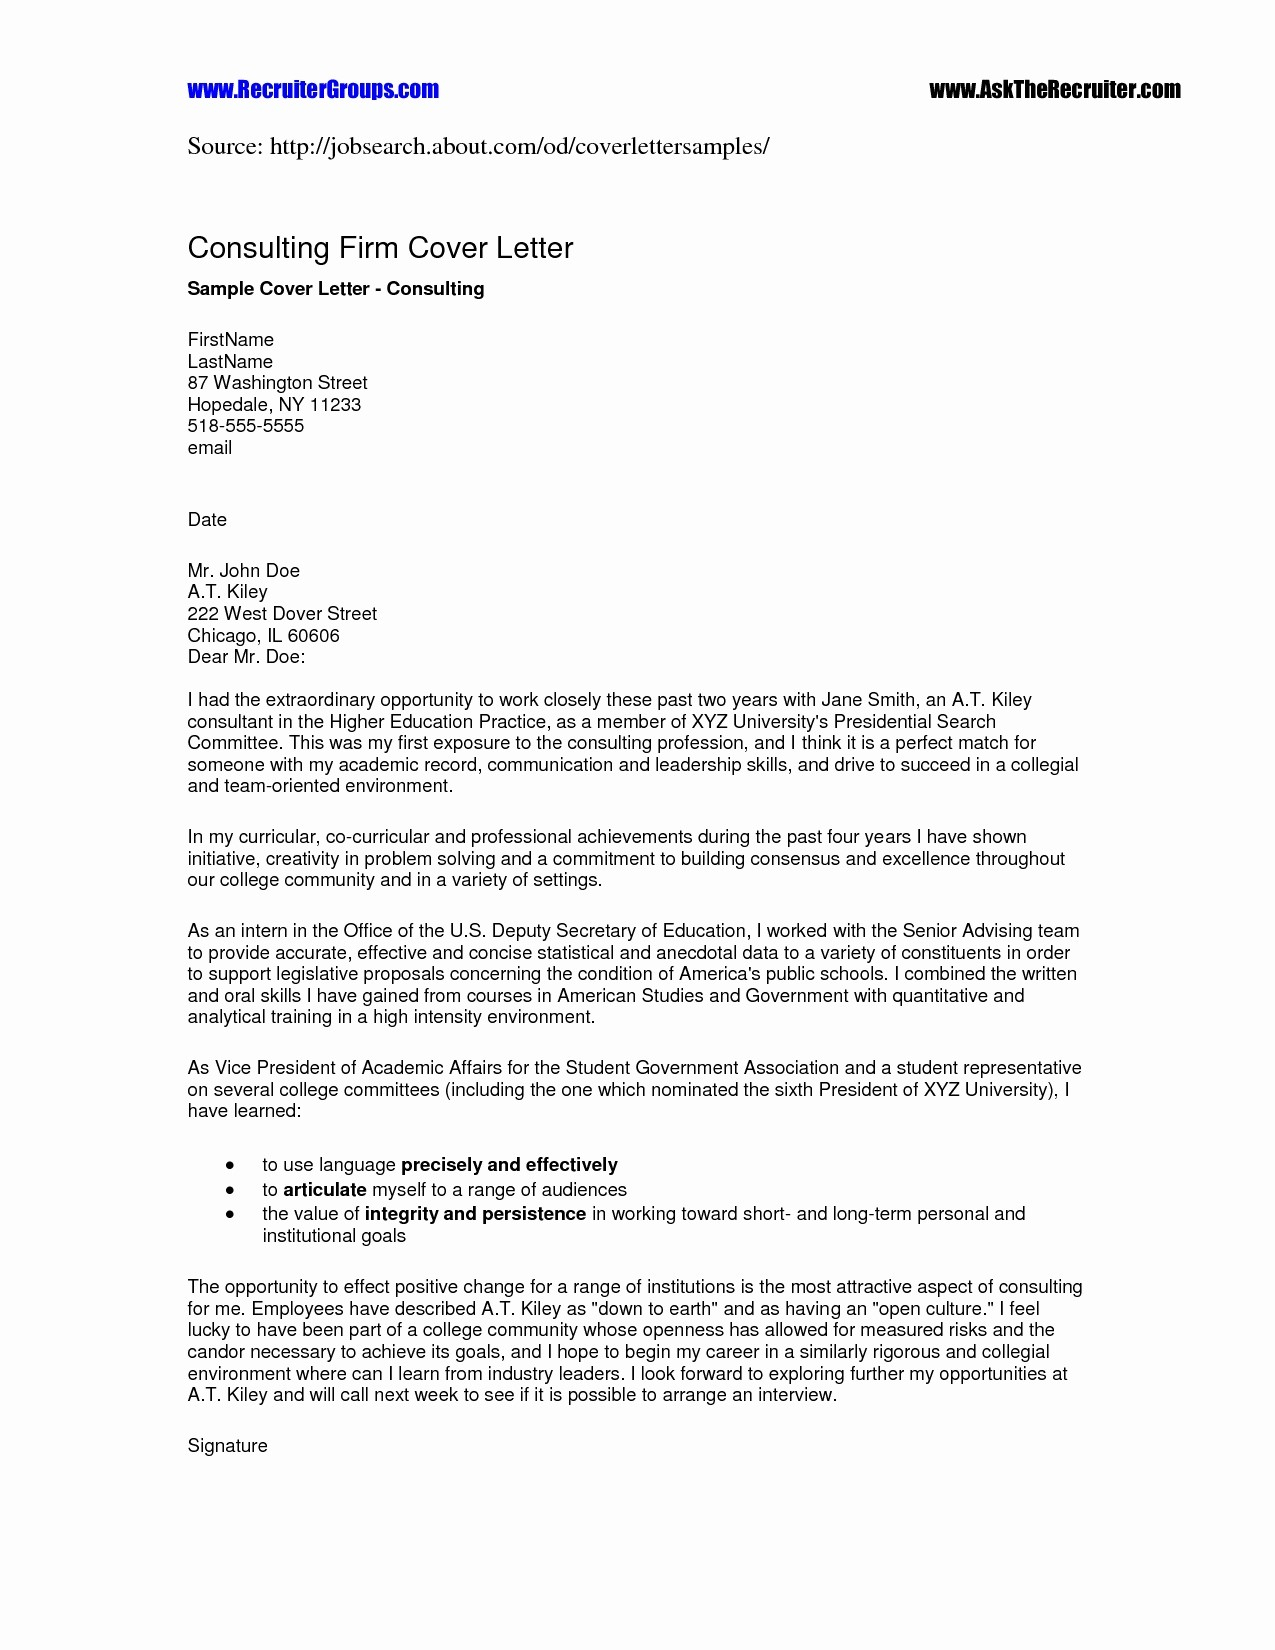 Work Reference Letter Template - Sample Cover Letter for Good Conduct Certificate Fresh Reference